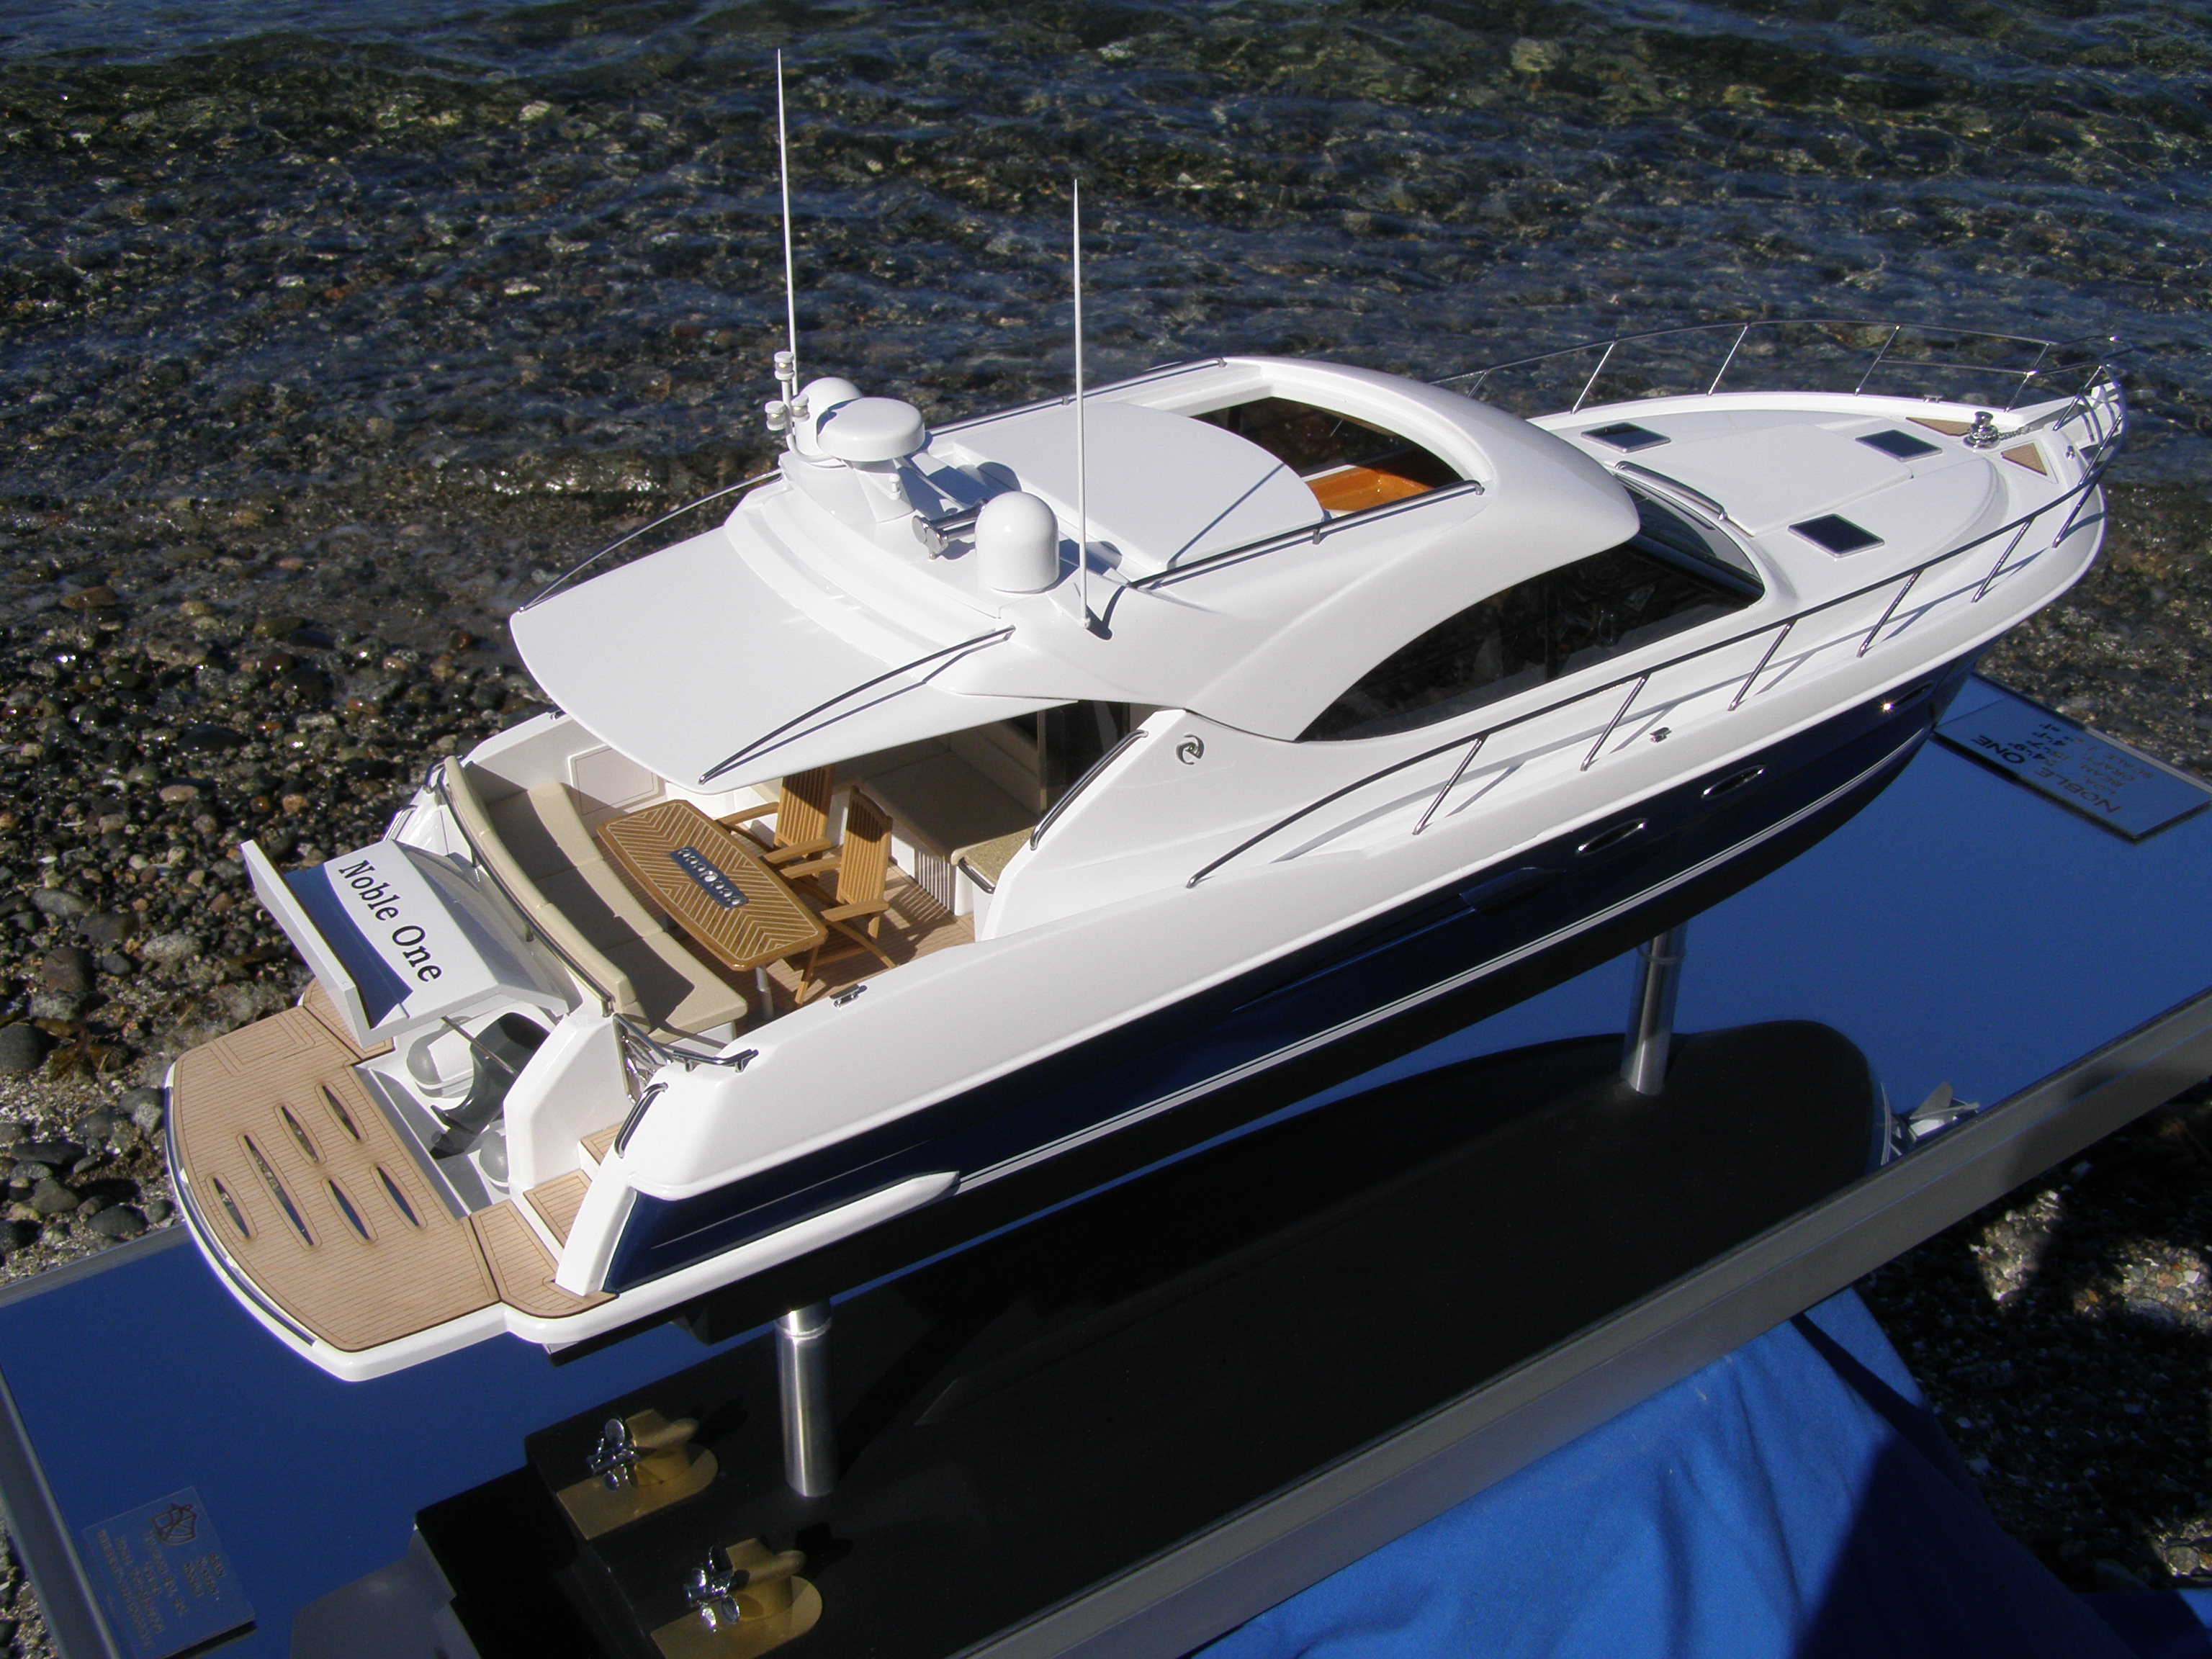 large scale rc boats for sale with New Scale Model on Tamiya Rc Bullhead Monster Truck Model Kit as well Titanic Toy Boat 440820260 in addition Wooden Rc Model Boat Kits Details as well Rc Gas Fuel also Tamiya 148 Vought F4u1a Corsair.